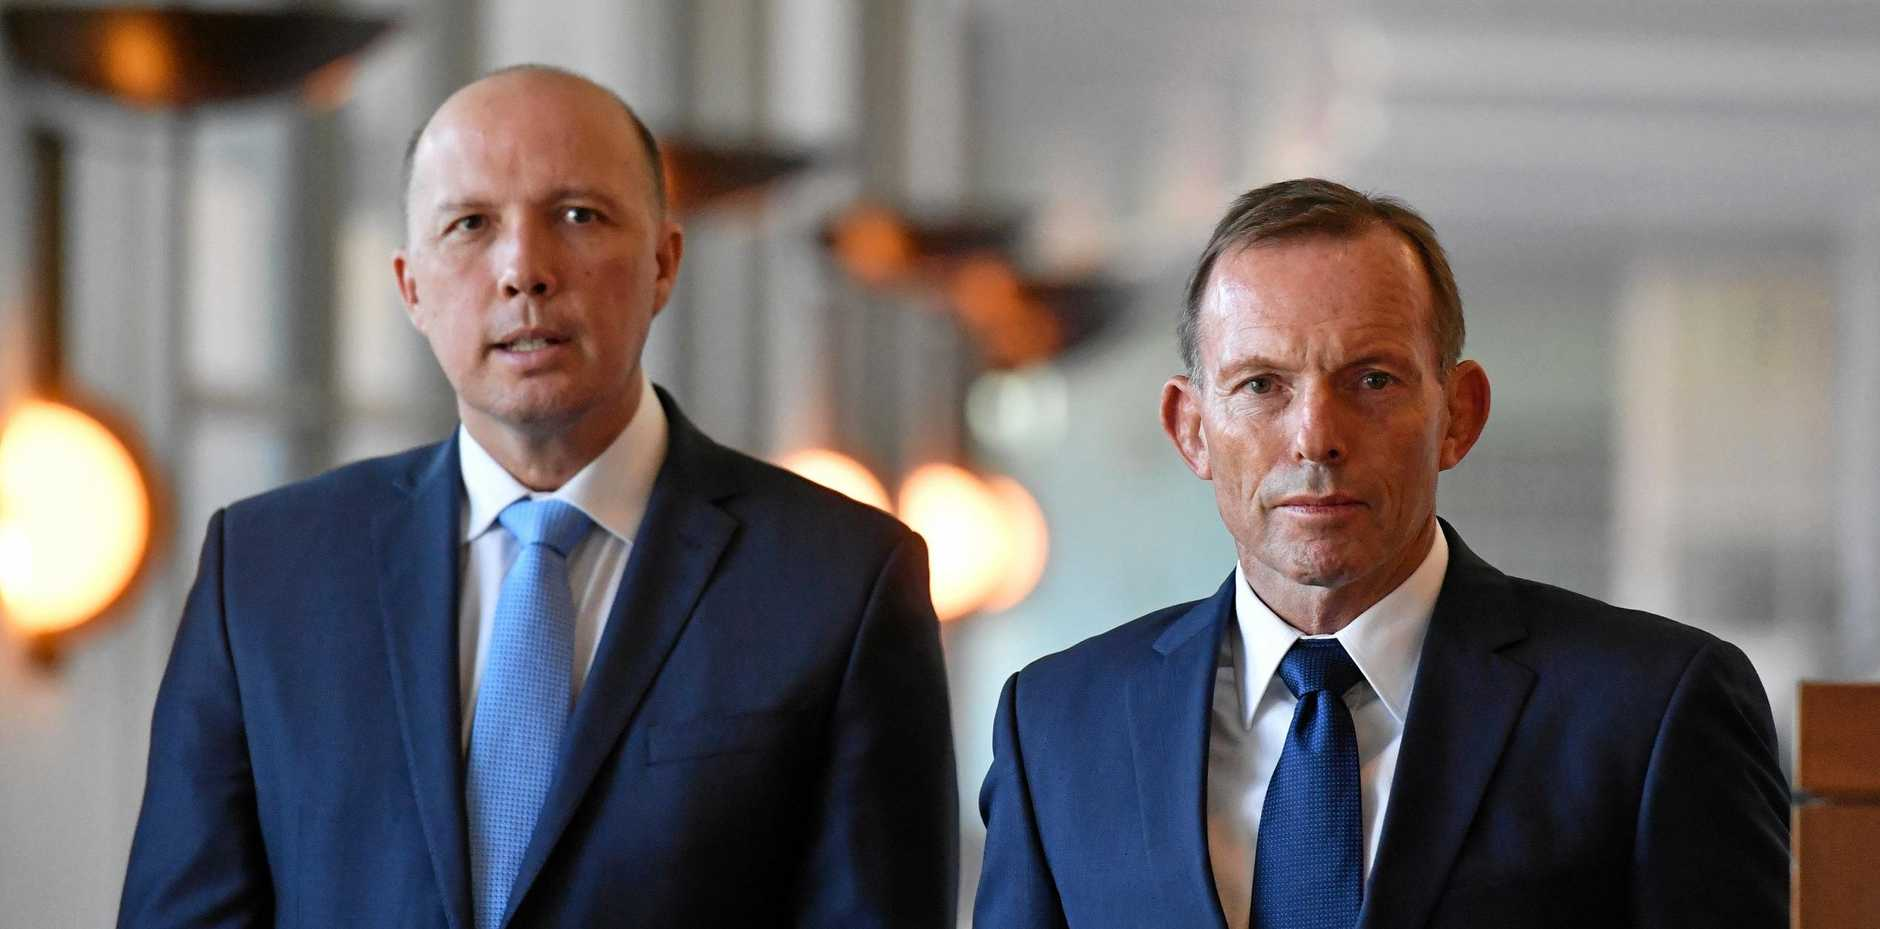 Minister for Immigration Peter Dutton and former prime minister Tony Abbott.